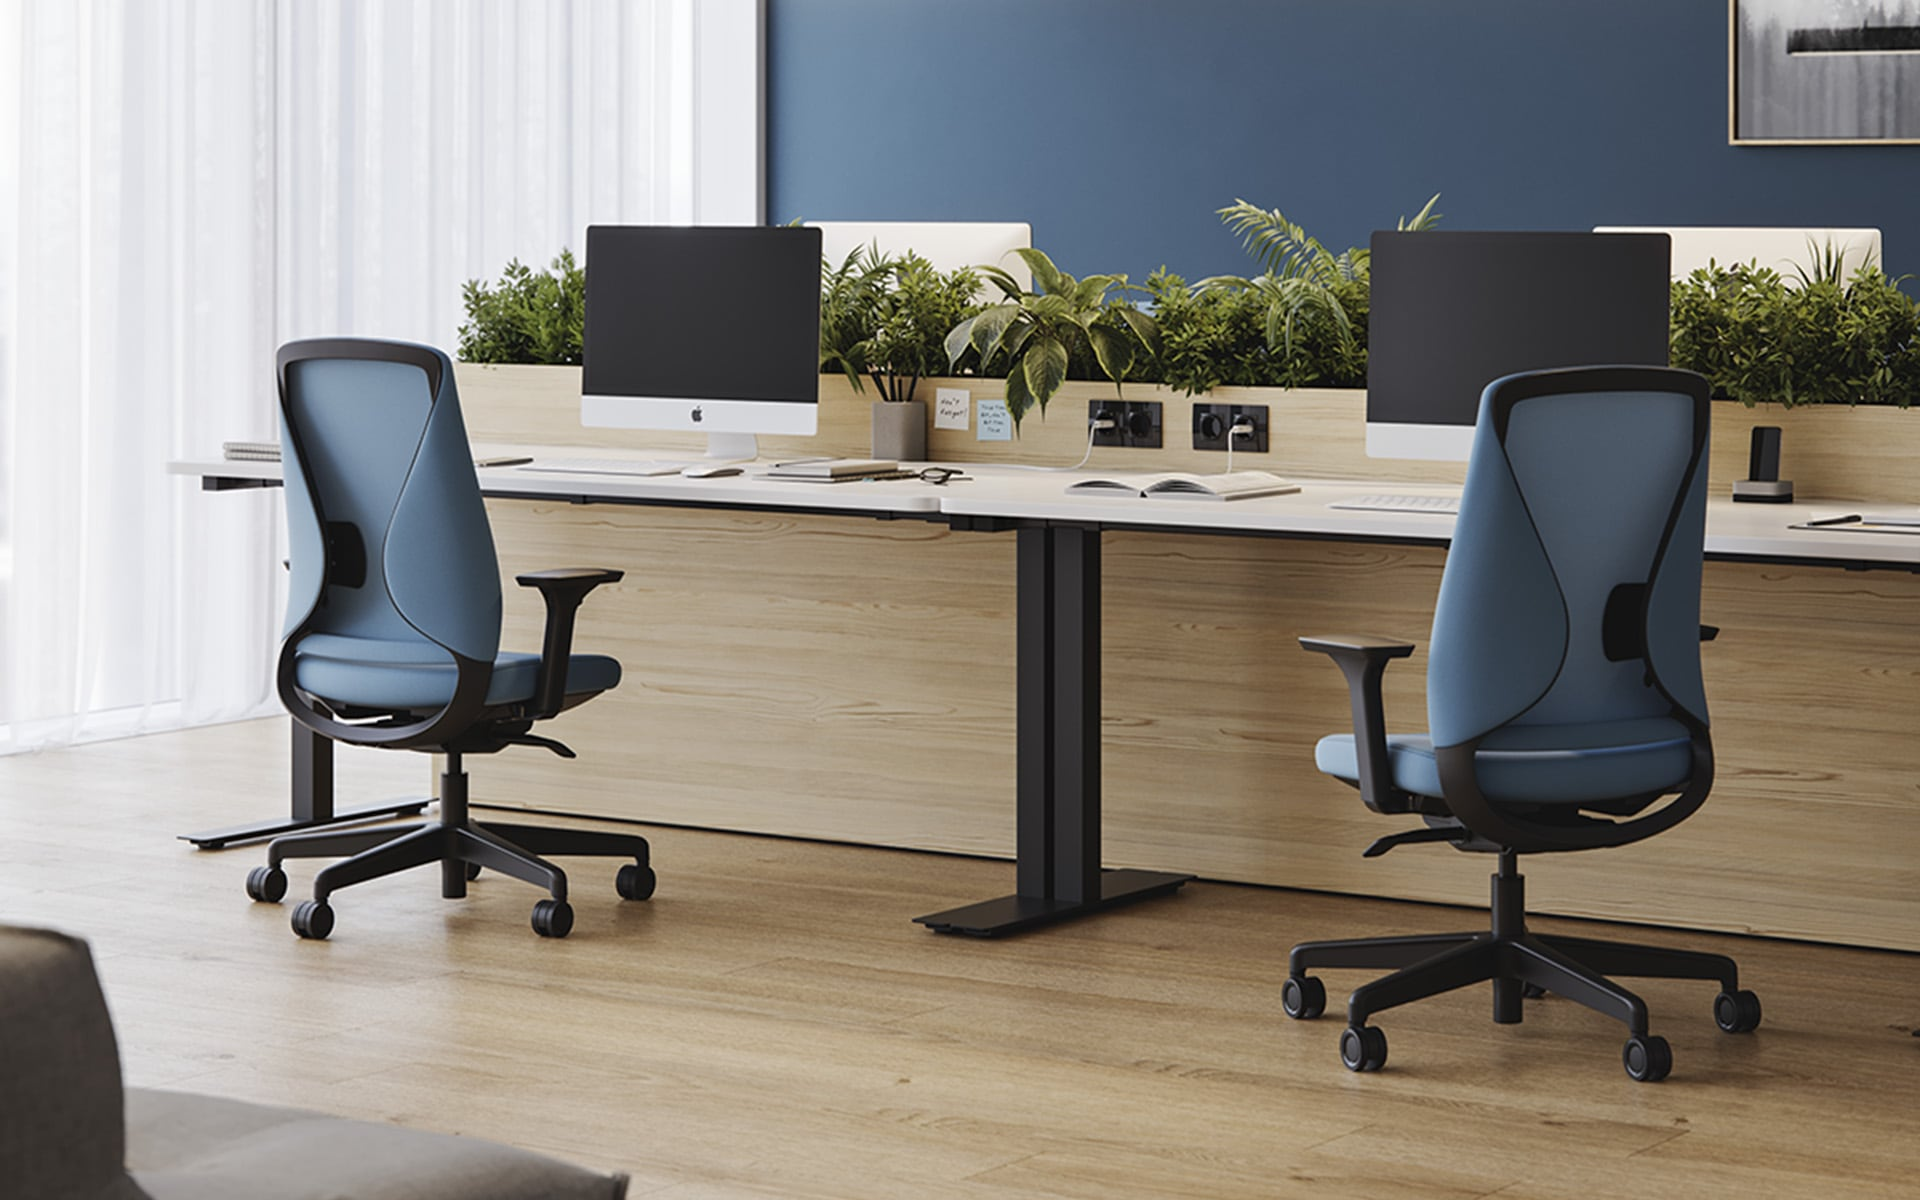 Two Comfordy Silhouette Office chairs by ITO Design with light blue upholstery in modern office with many plants